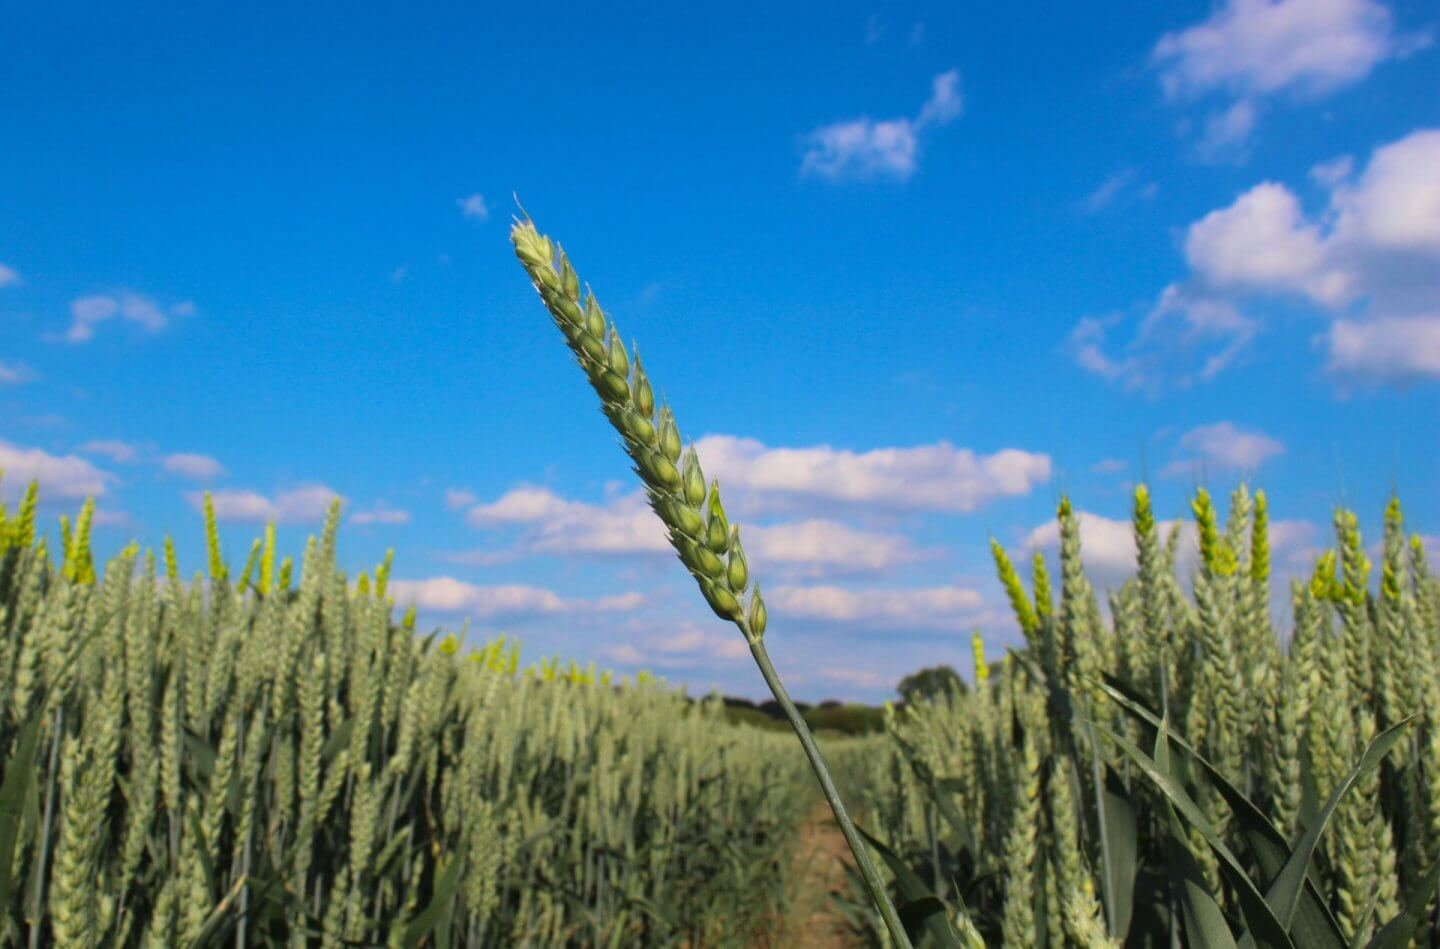 corn, wheat, blue sky, obsession with corn